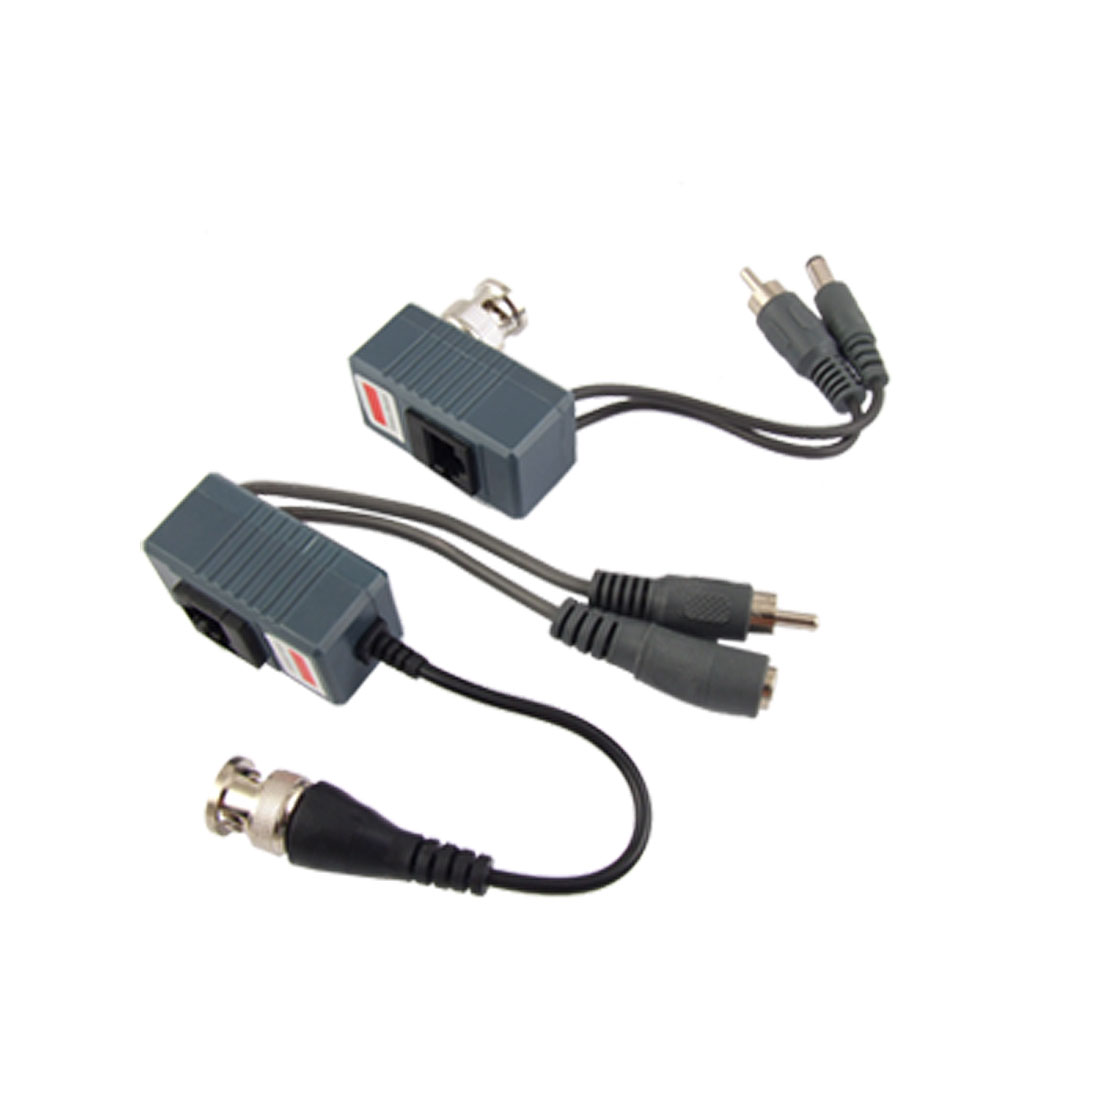 1 Port BNC Passive Power Video Audio Balun Transceiver 2pcs for CCTV System